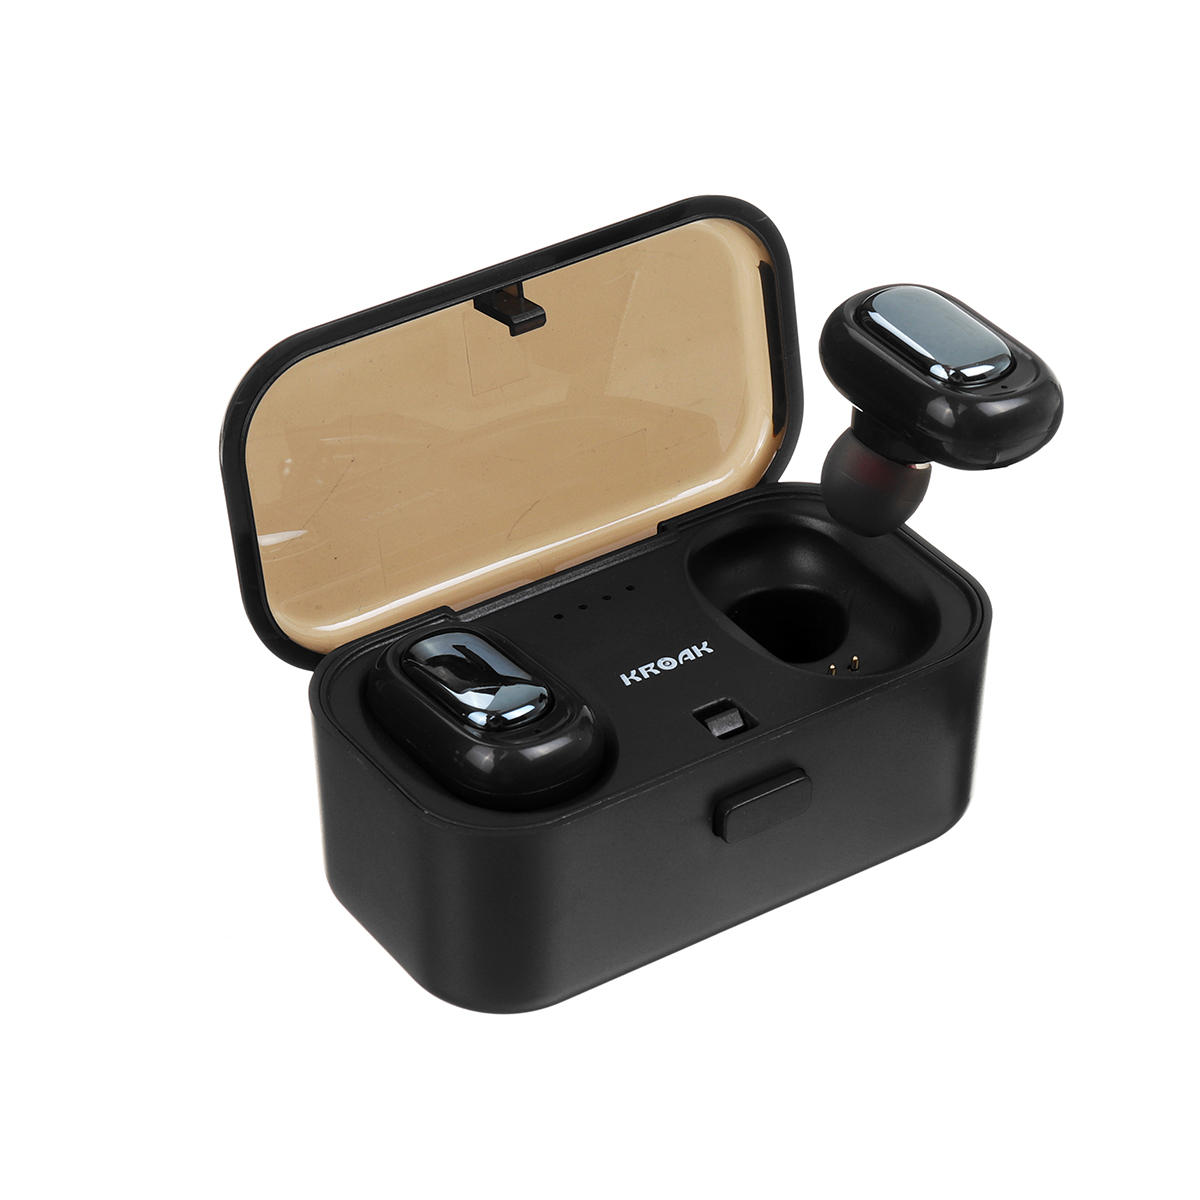 22d1cbda66b Mini TWS True Wireless bluetooth Earphone HiFi Stereo Noise Cancelling  Waterproof Headphone with 800mAh Charging Box COD